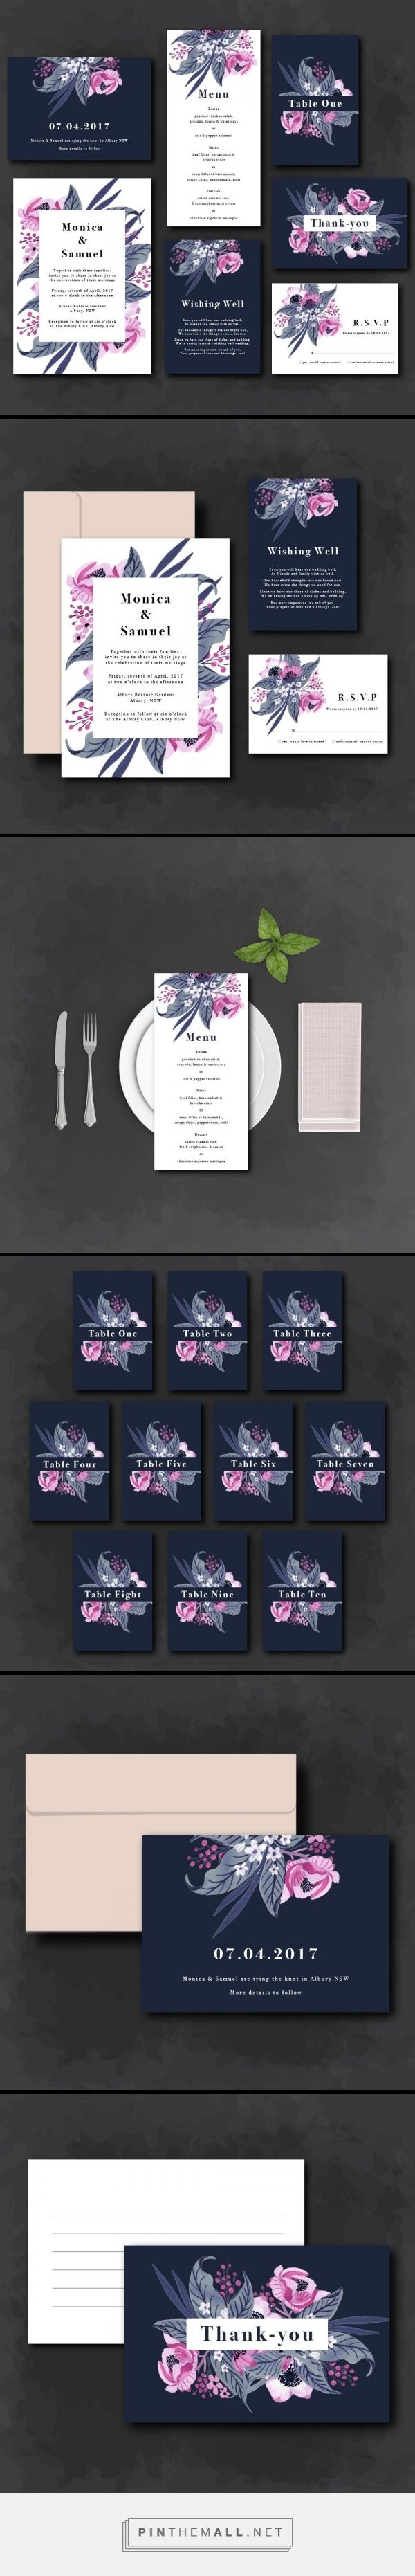 A feminine tropical navy and pink wedding invitation suite. Cards available include invitation, rsvp and details cards, save the date, menu, table numbers, thankyou card